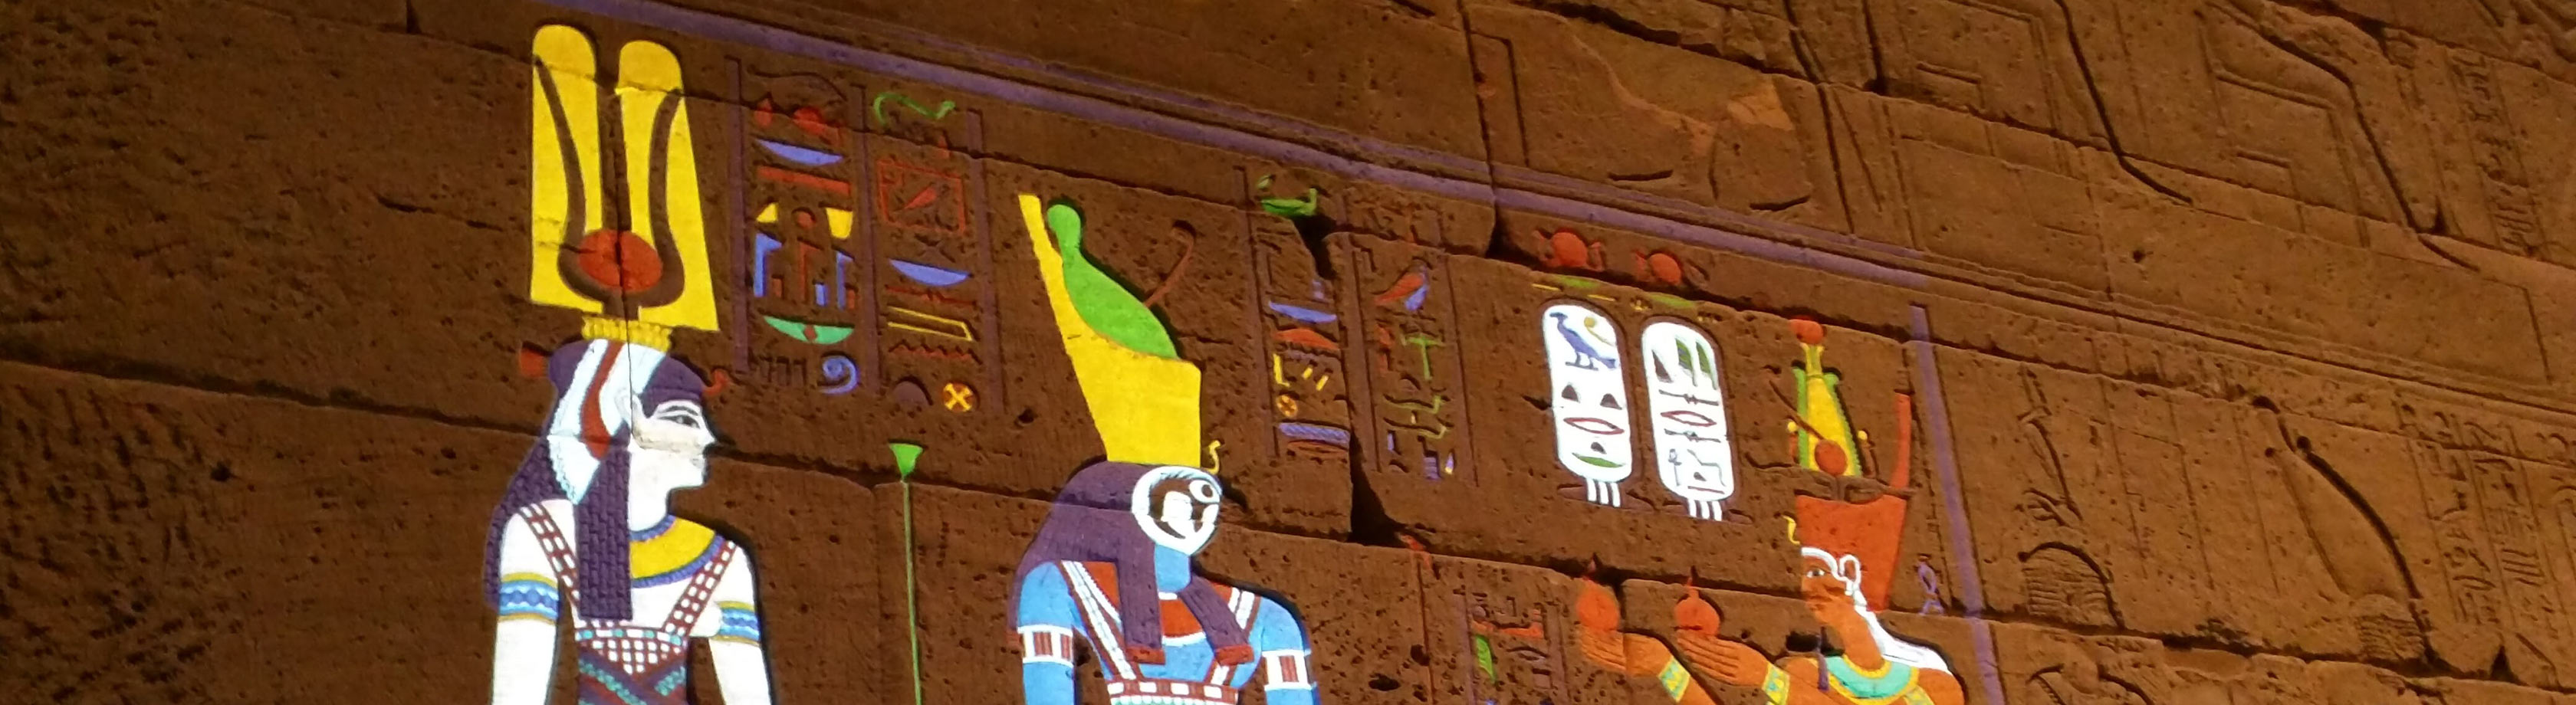 The Met Media Lab used projection mapping to virtually restore the original colors on the Temple of Dendur